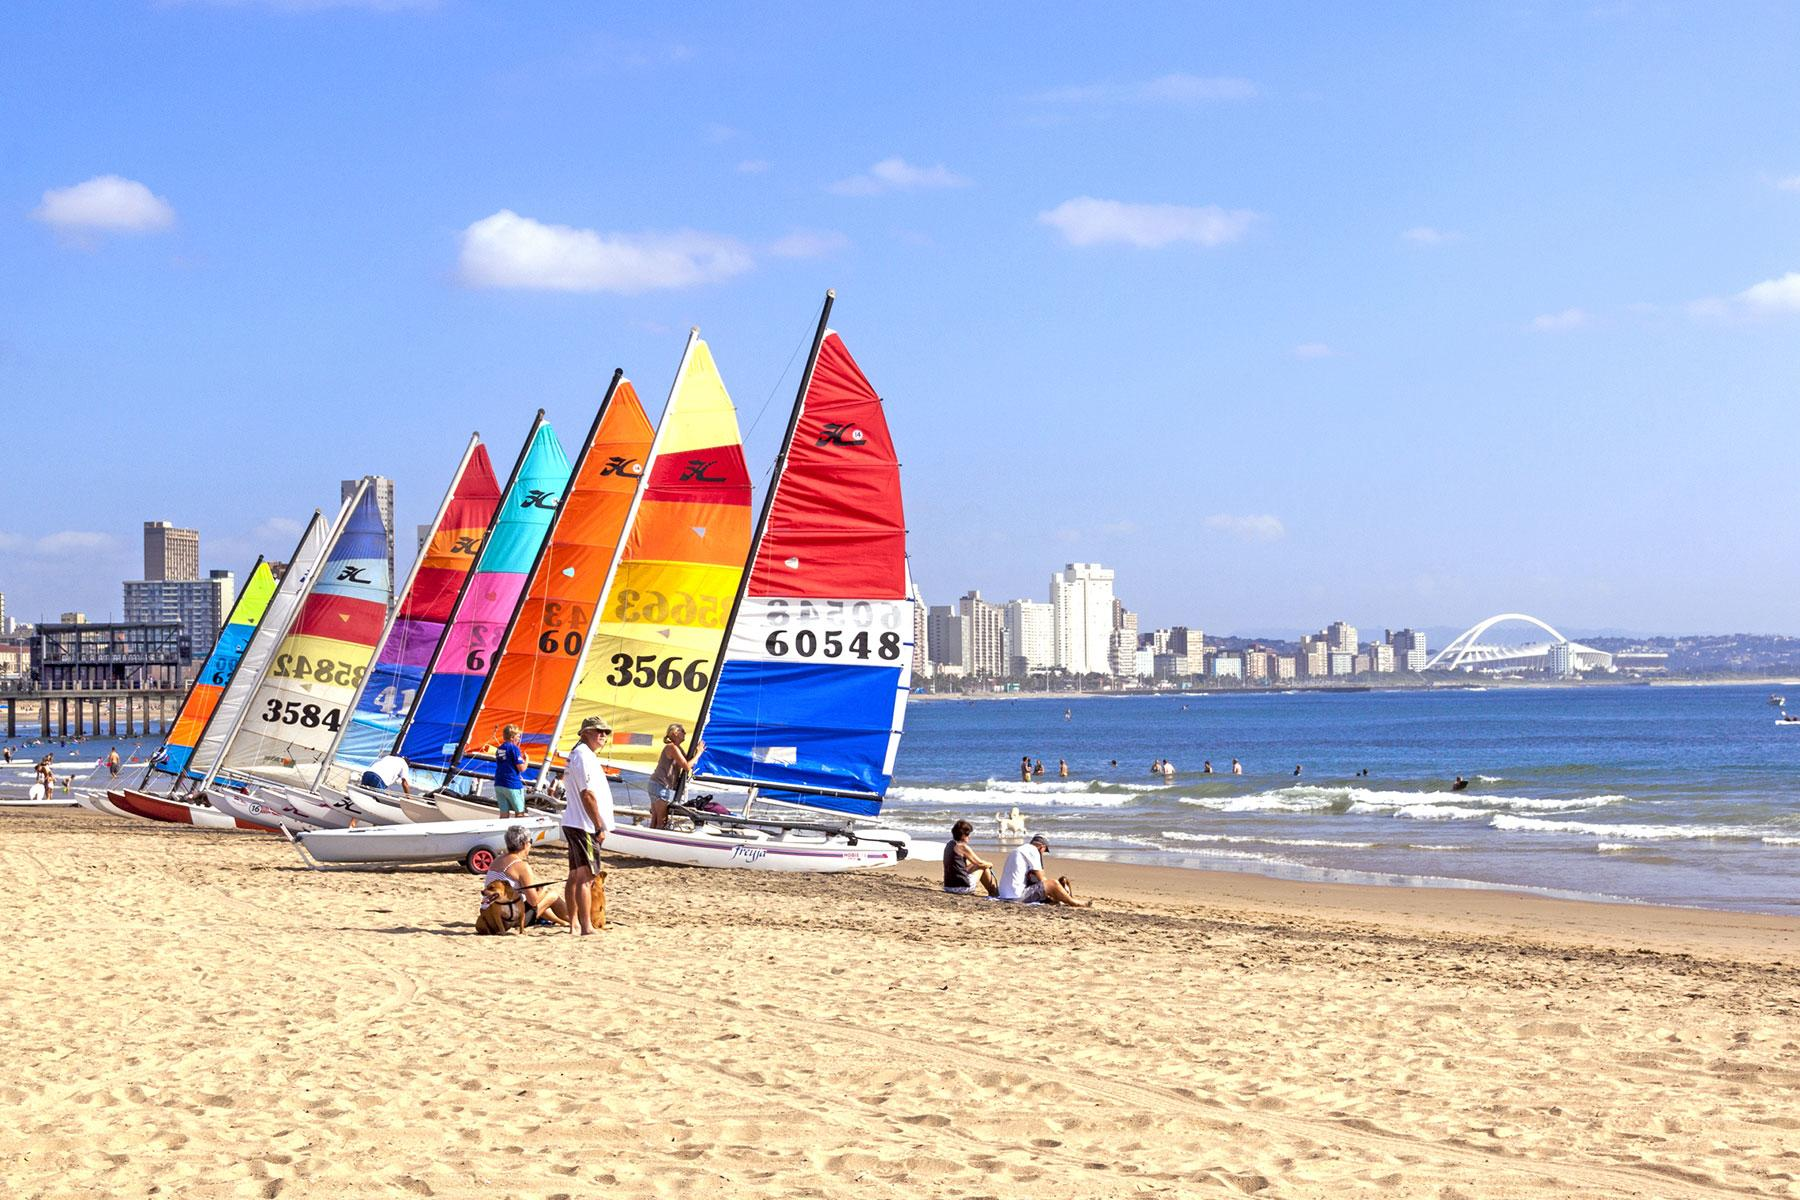 5 Nights in Durban